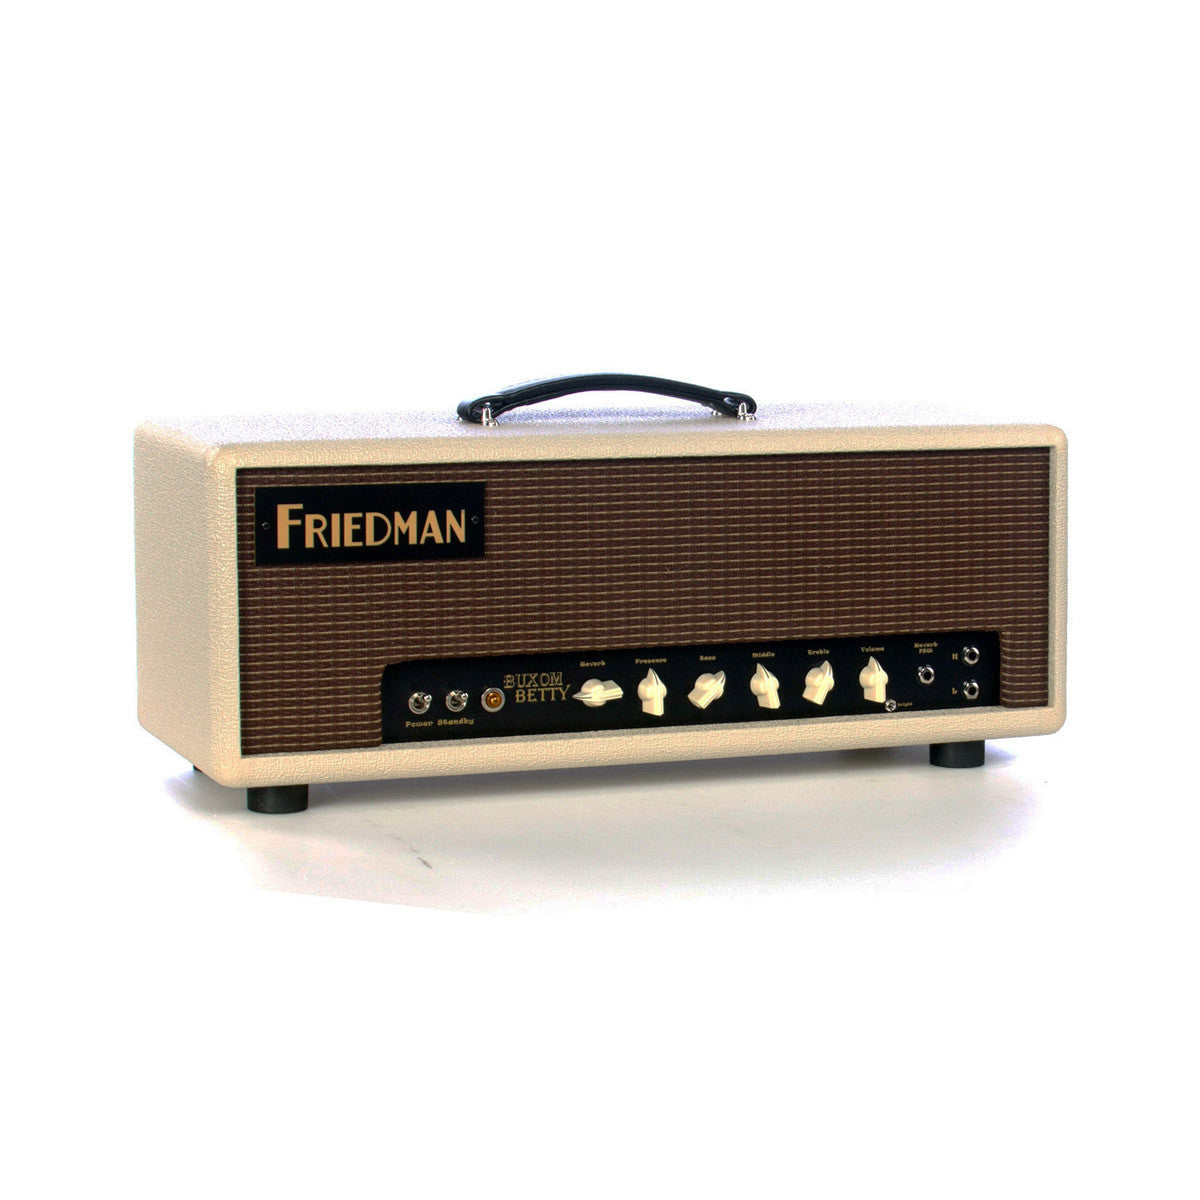 Friedman Amps Buxom Betty Head 40 watt Tube Guitar Amplifier | Make ...